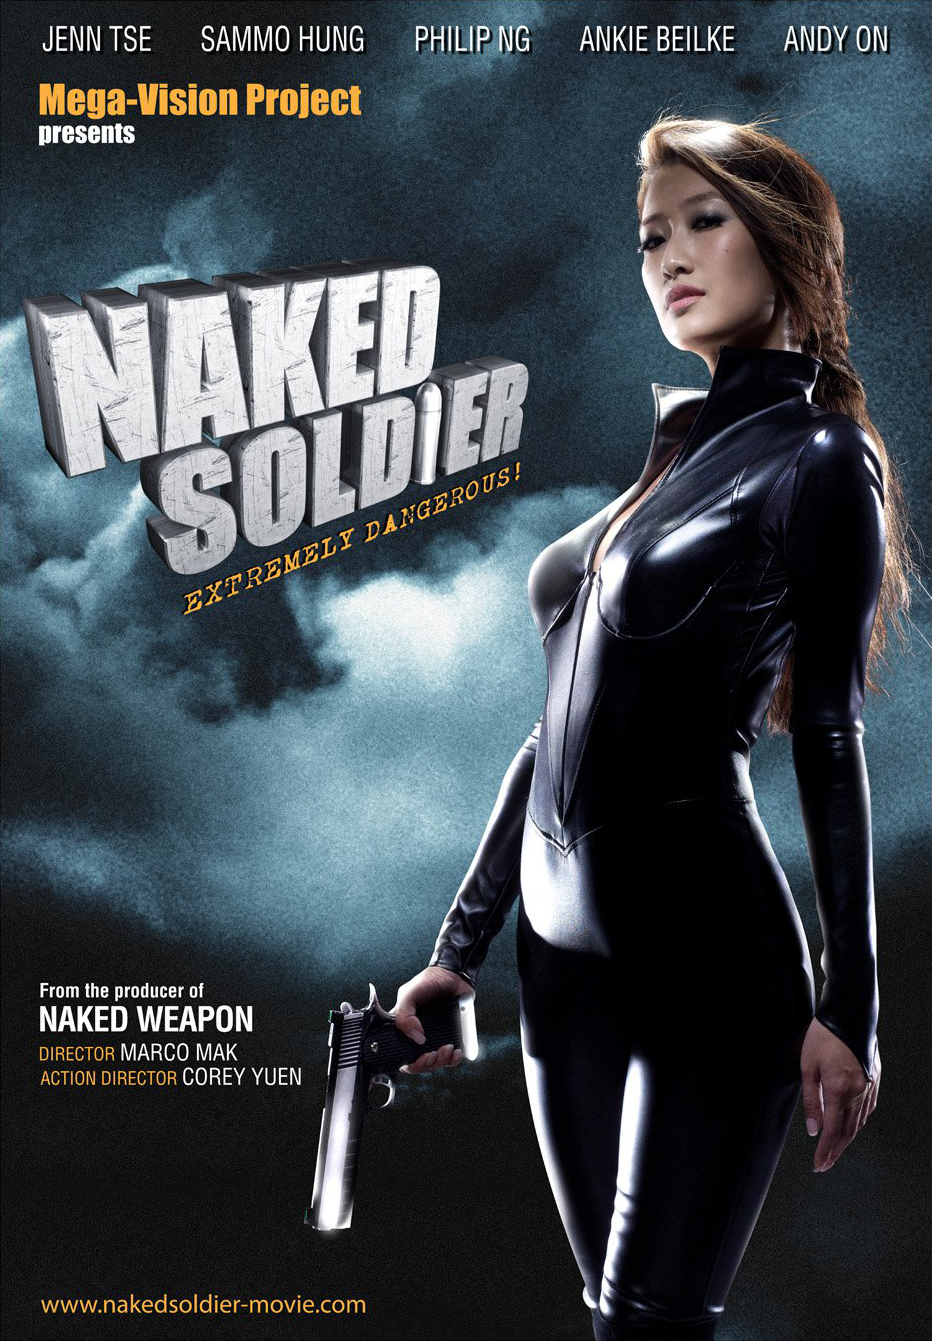 Watch Movie Naked Soldier (2012) Full Free Online